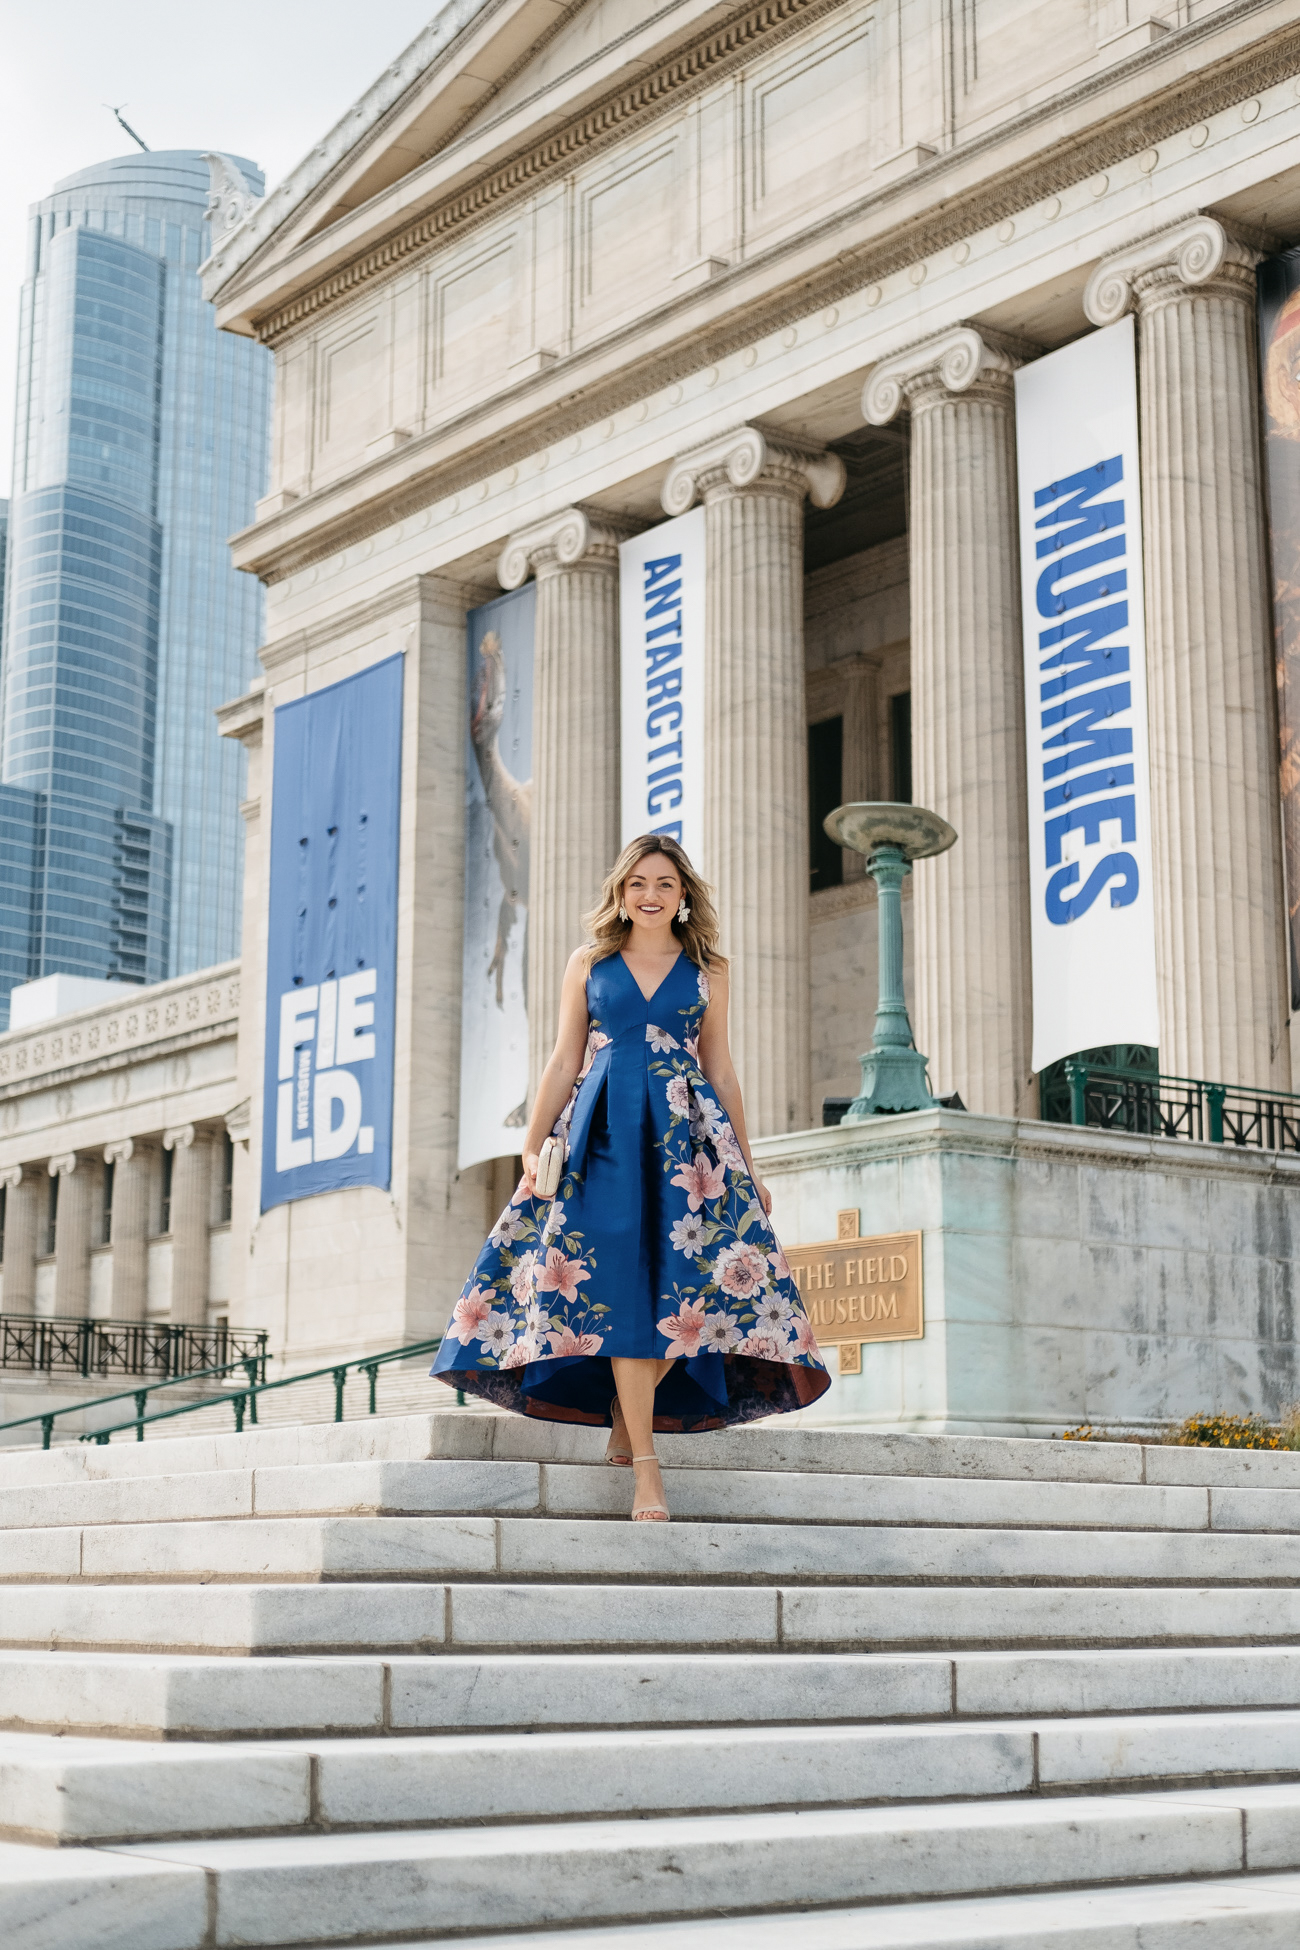 Jessica Sturdy, blogger behind the popular blog Bows & Sequins, at the field museum in Chicago for a black tie optional wedding.